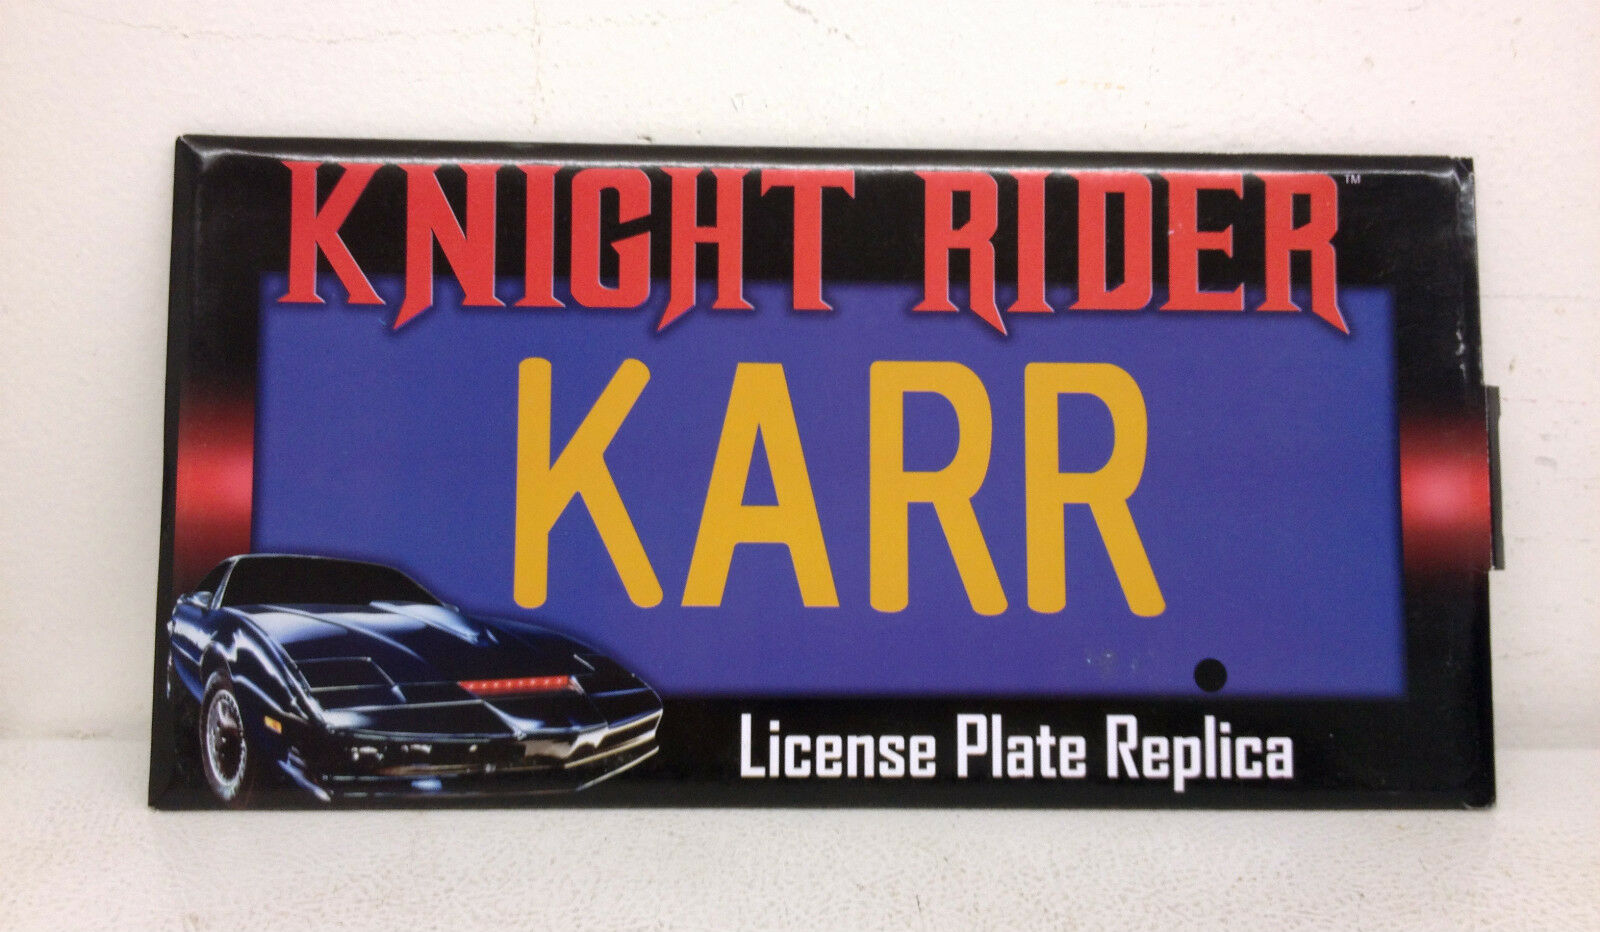 2012 Diamond Select Knight Rider Karr License Plate Replica KR22820LP